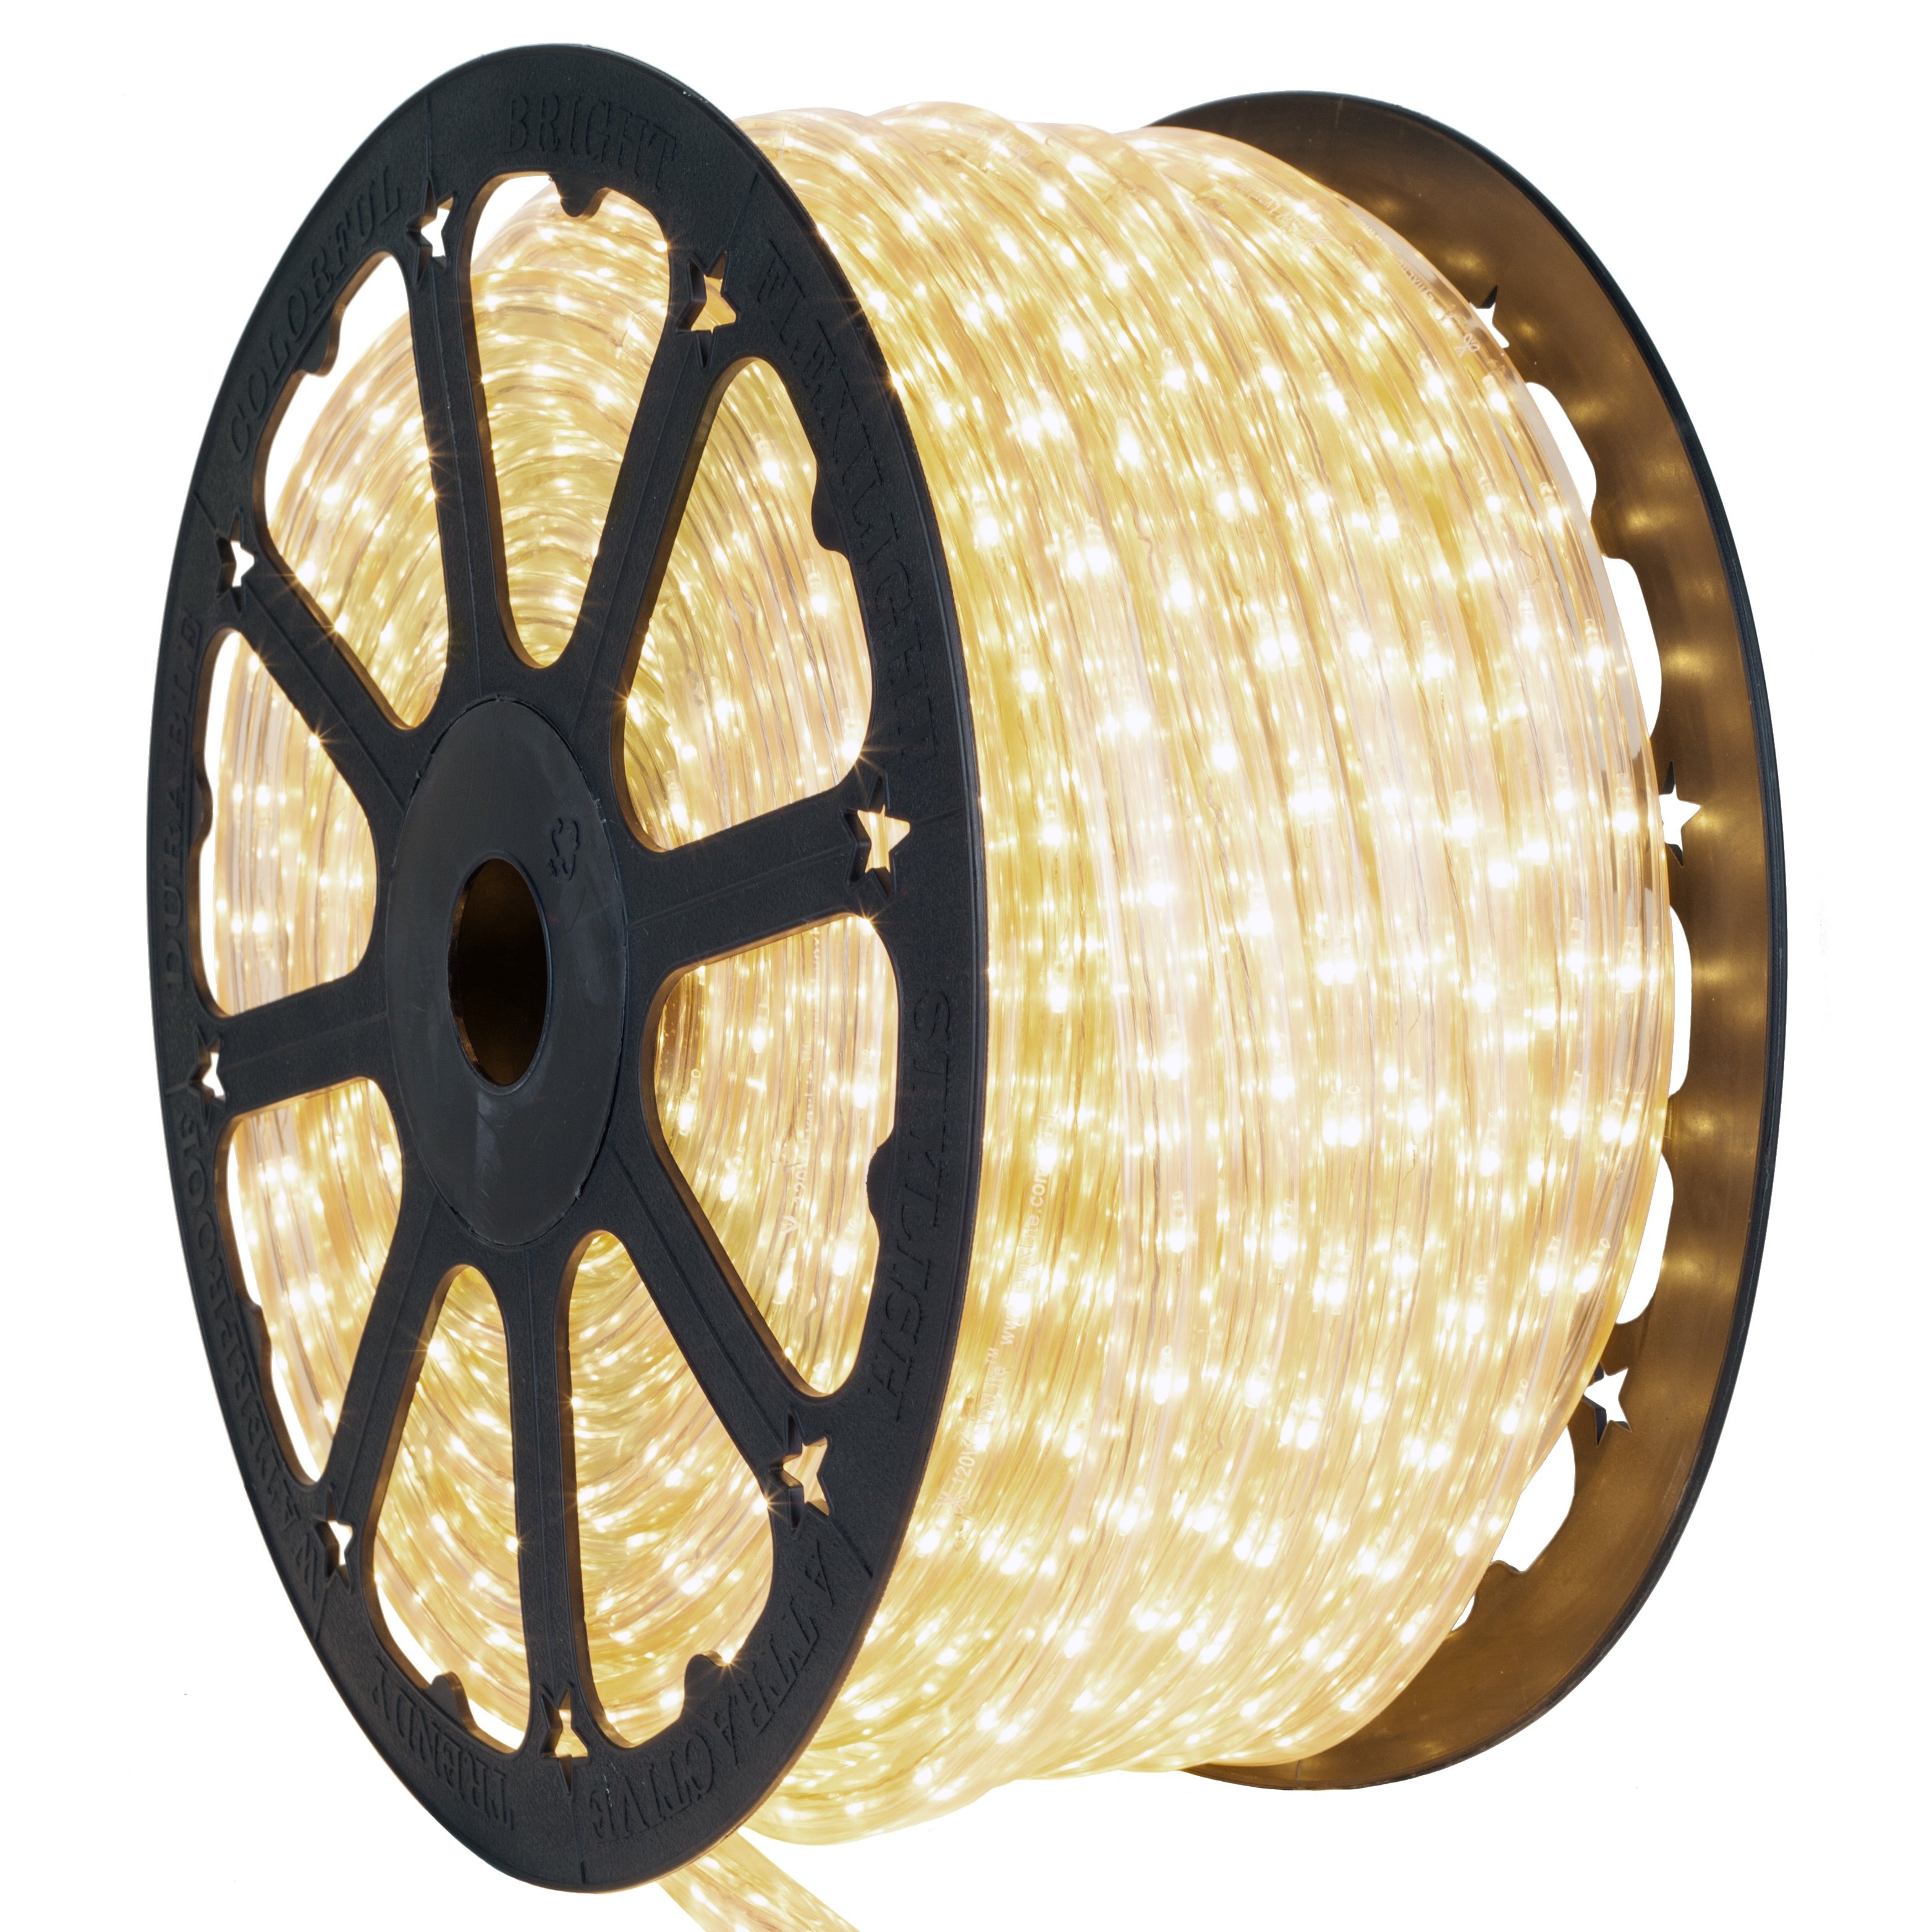 Clear Square Rope Light Spool